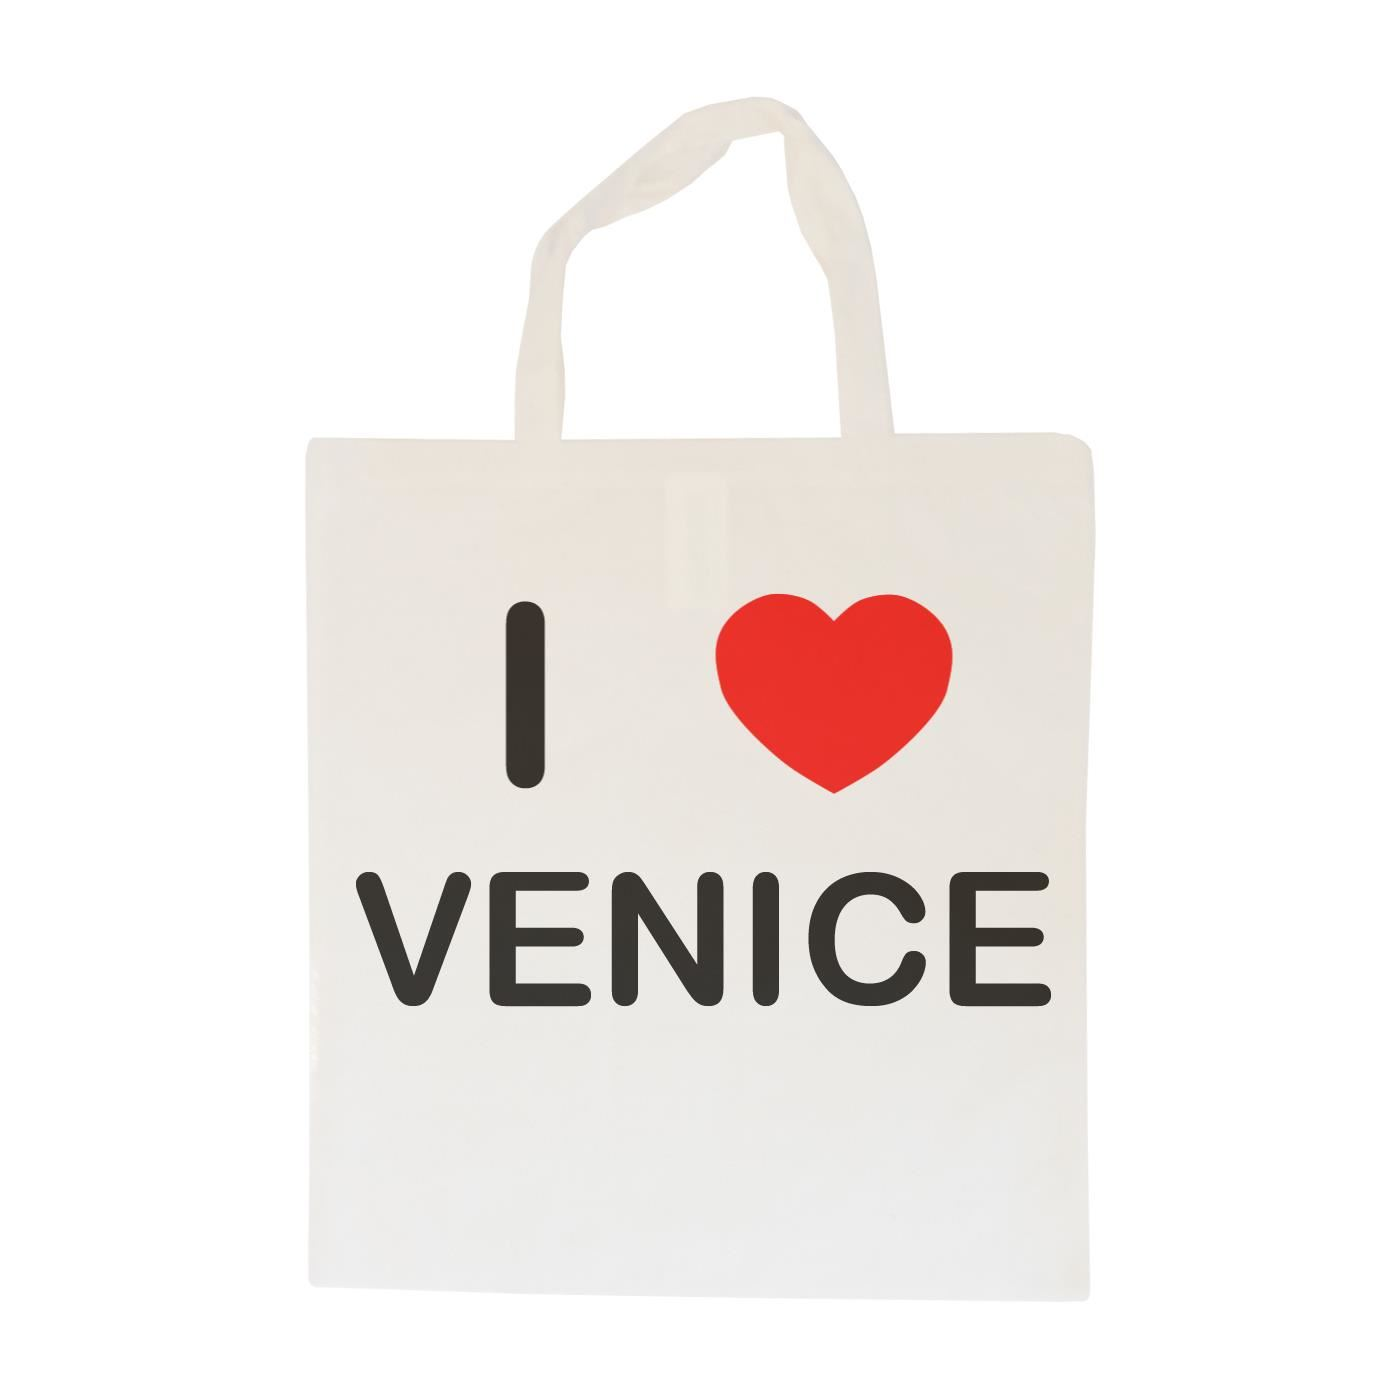 I Love Venice - Cotton Bag | Size choice Tote, Shopper or Sling